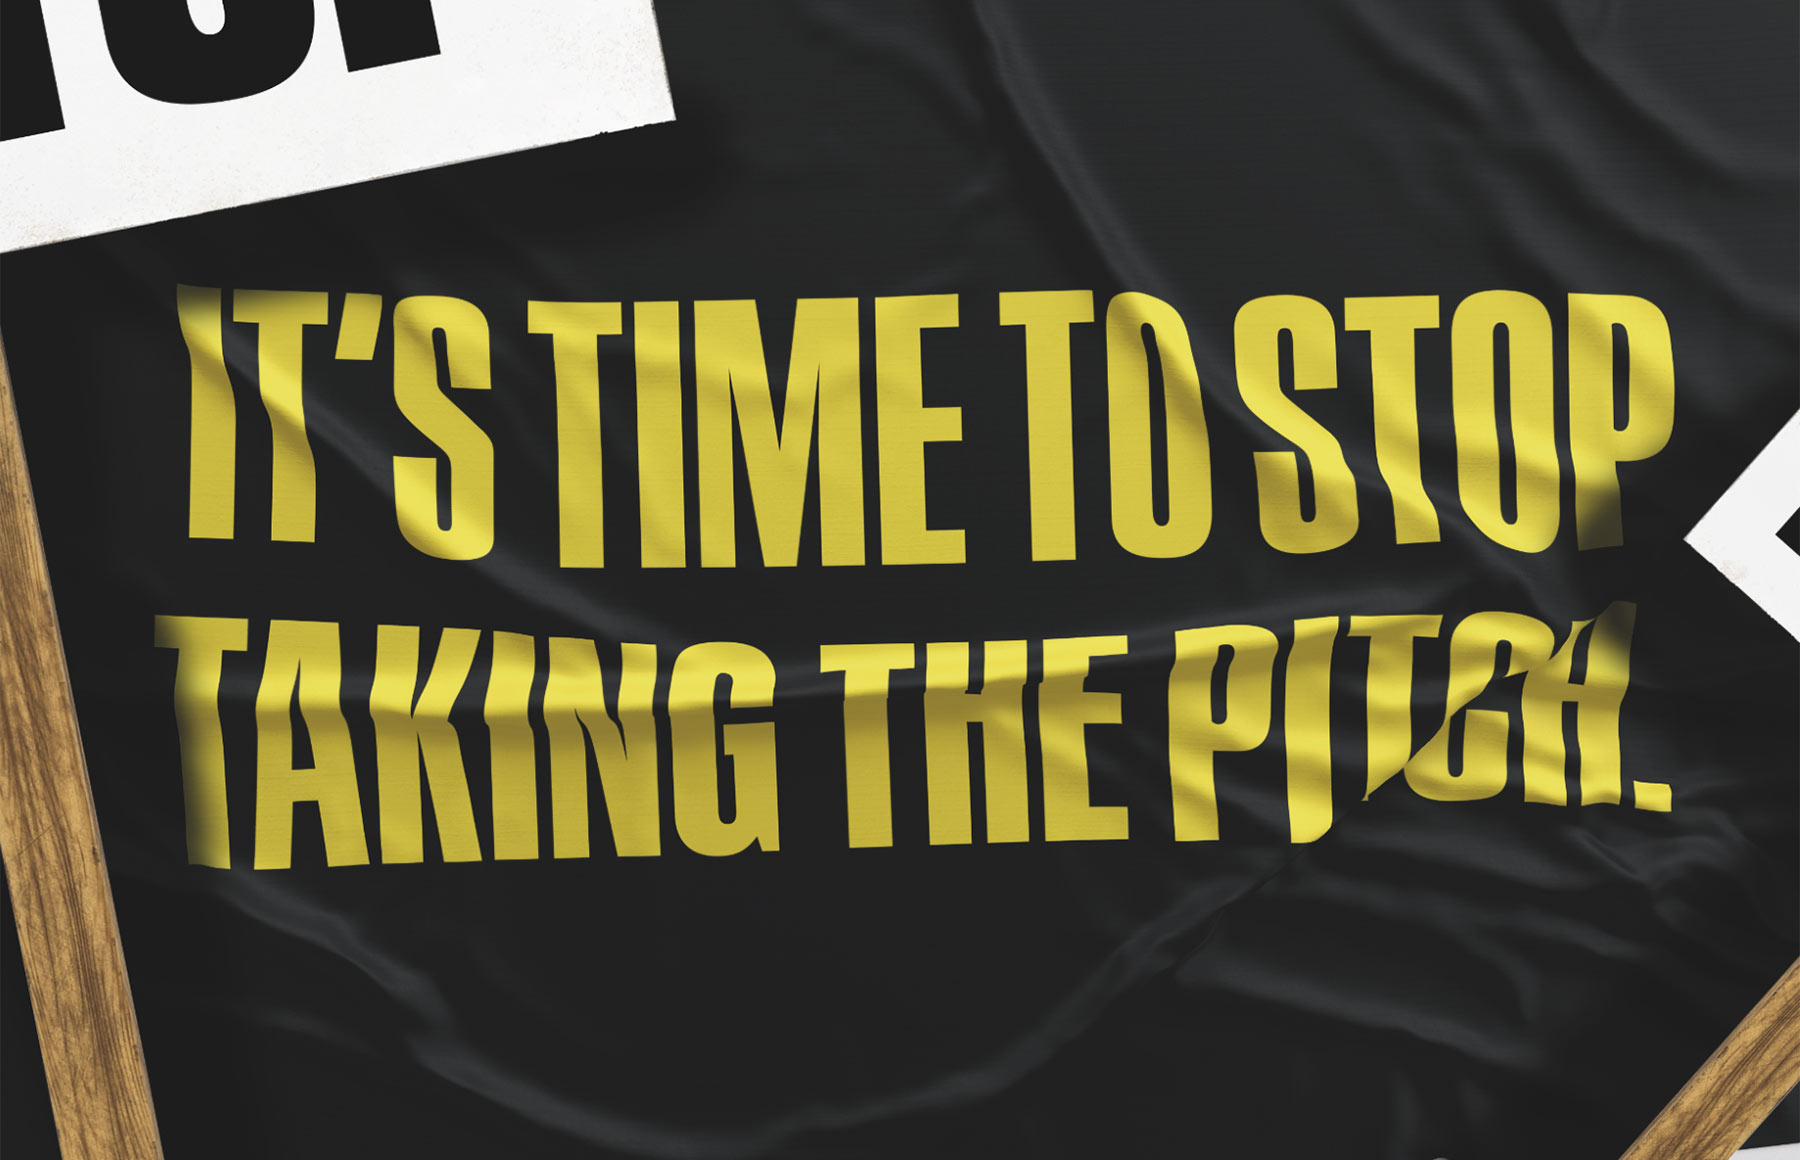 It's time to stop taking the pitch